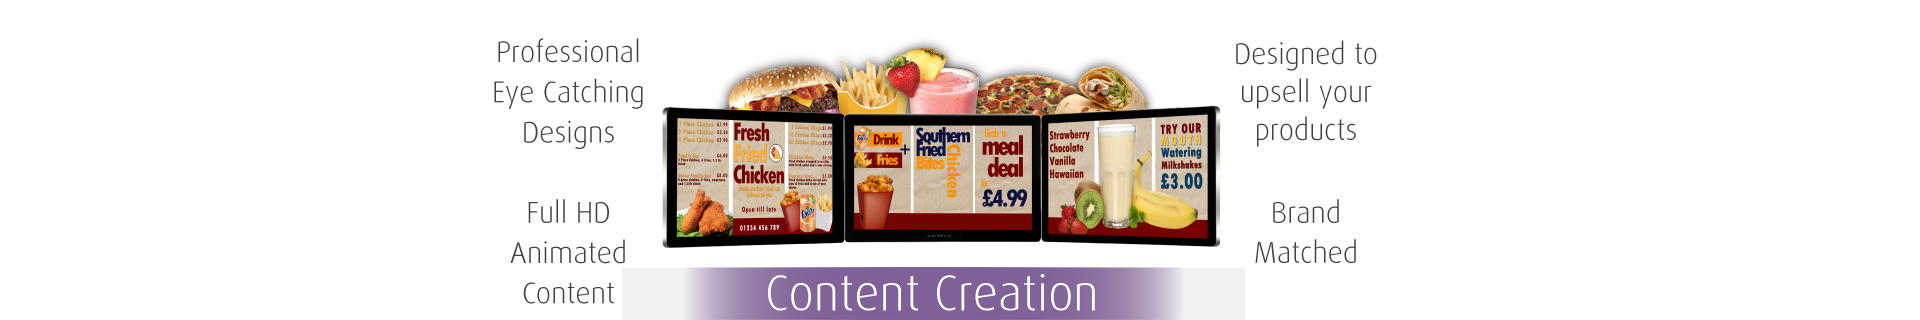 Full HD Content Creation for Digital Advertising Screens